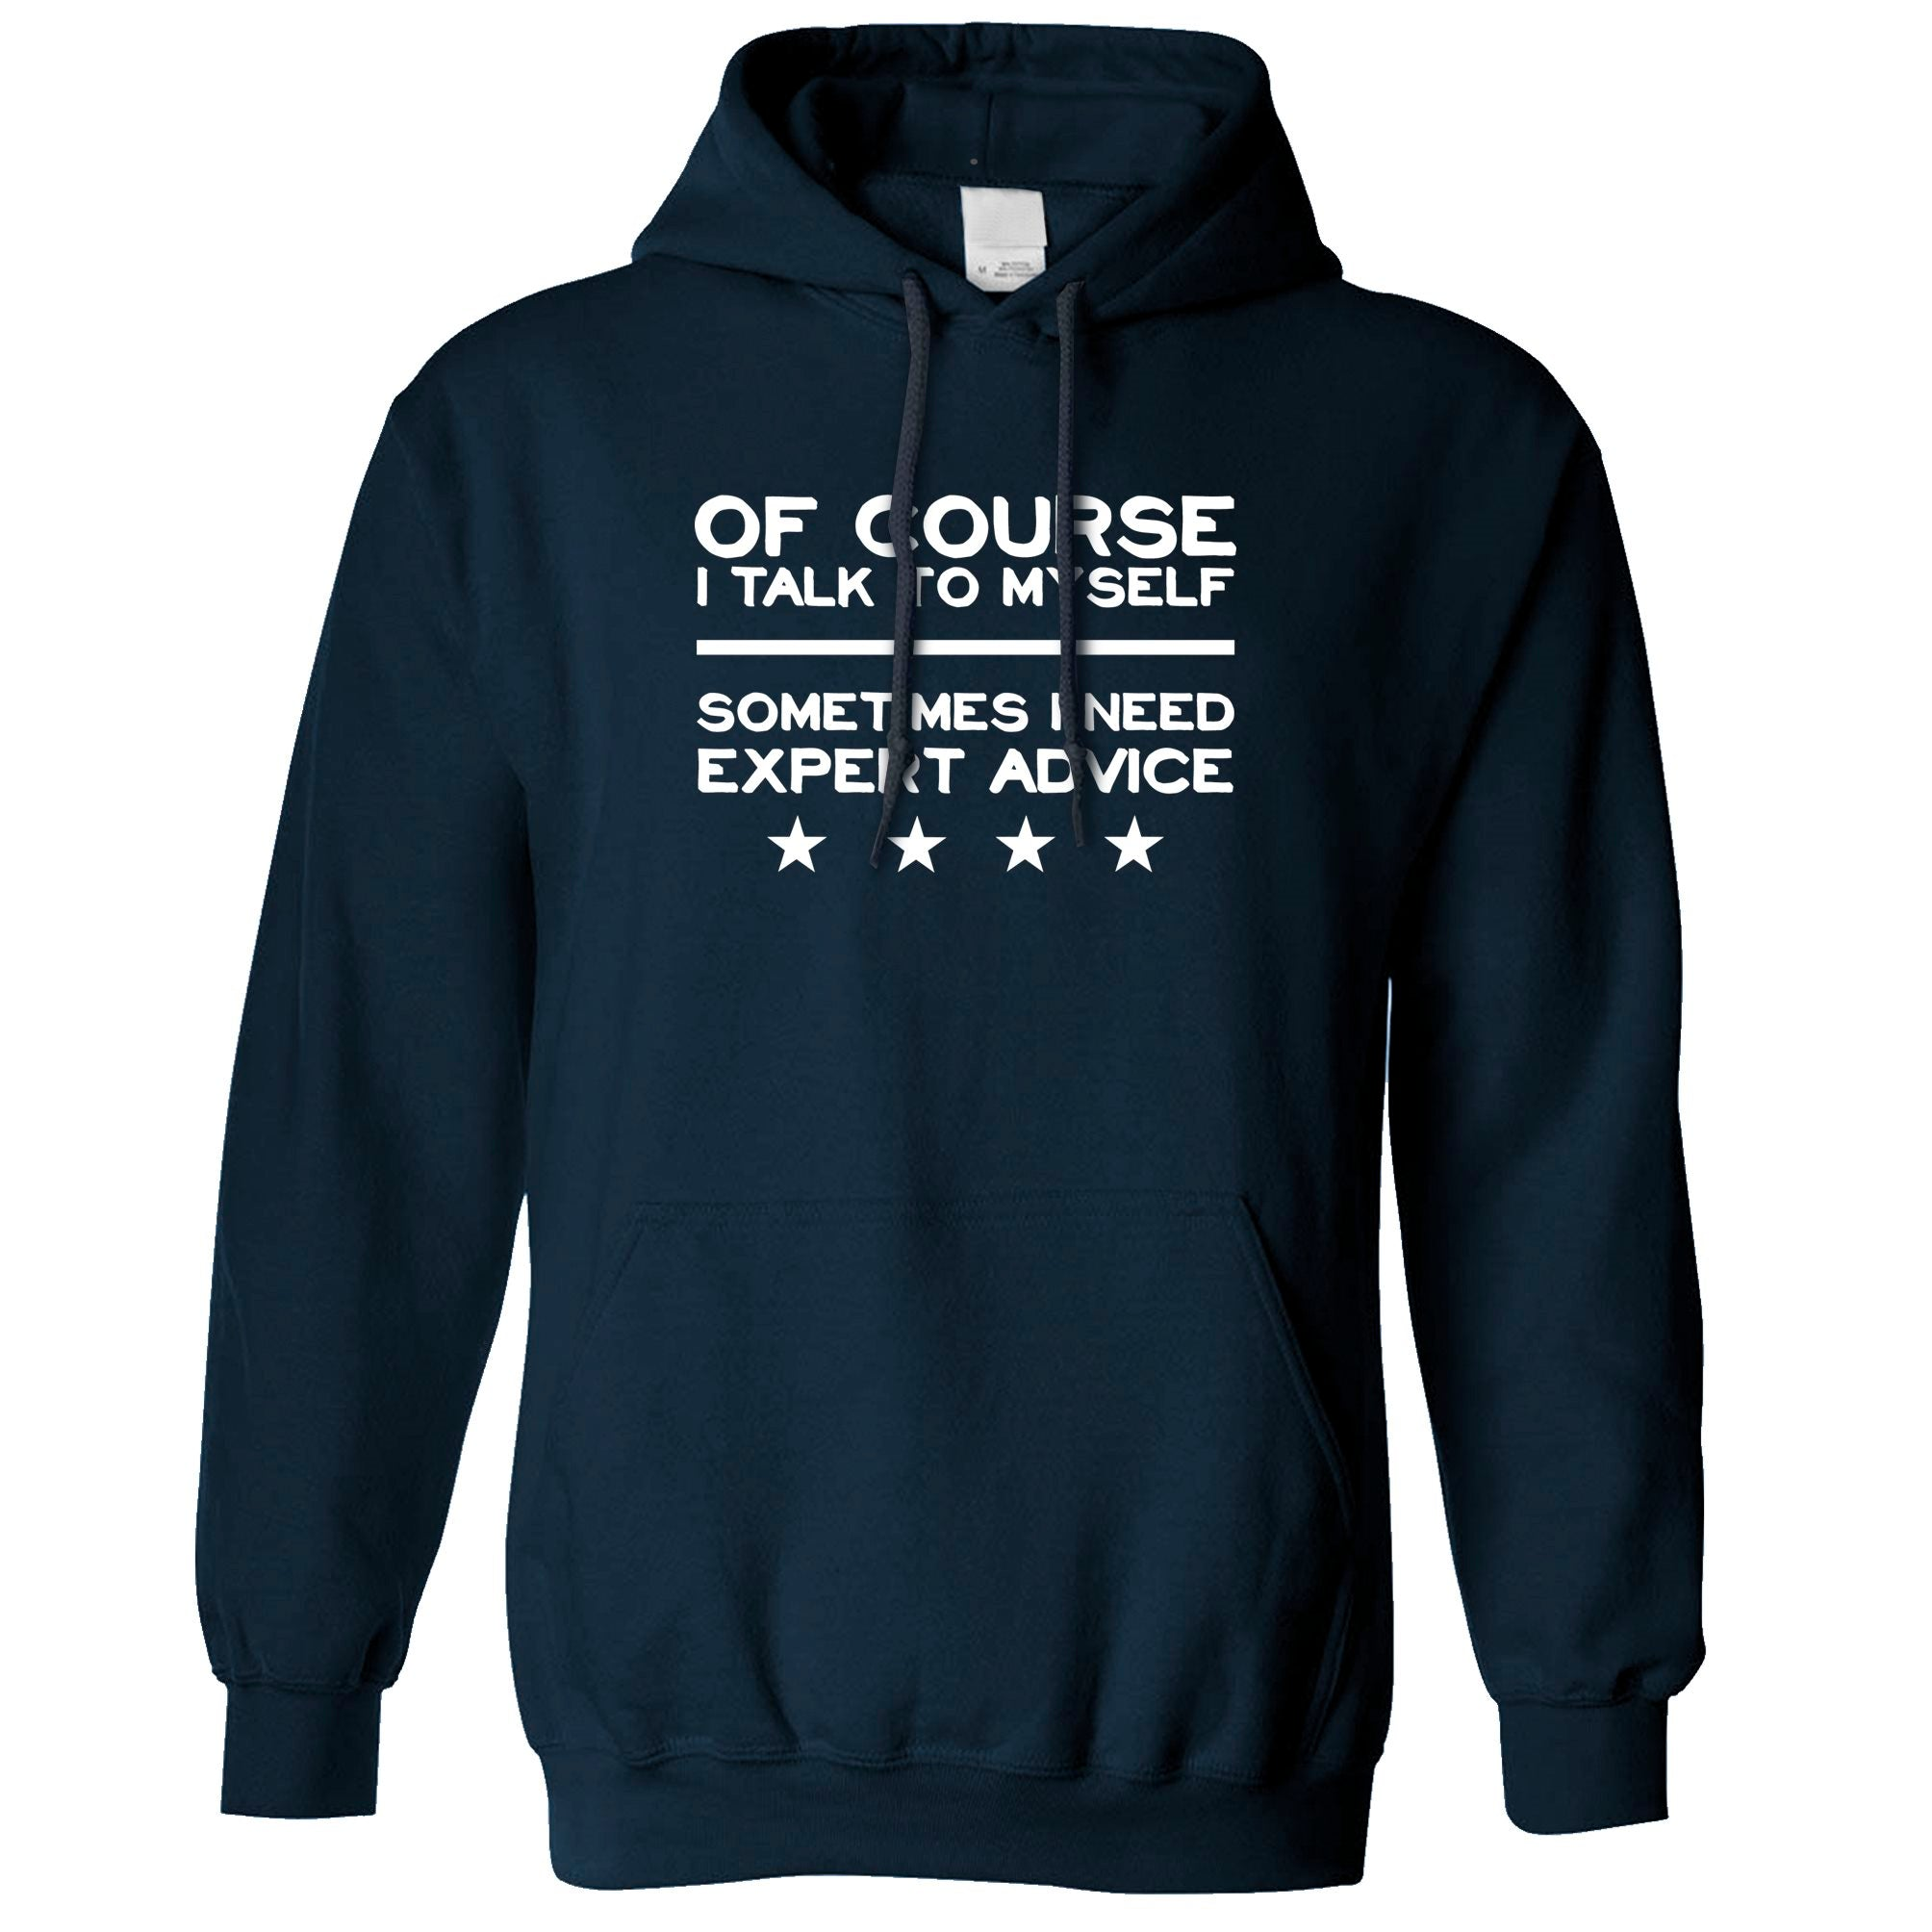 Funny Hoodie Of Course I Talk To Myself Hooded Jumper